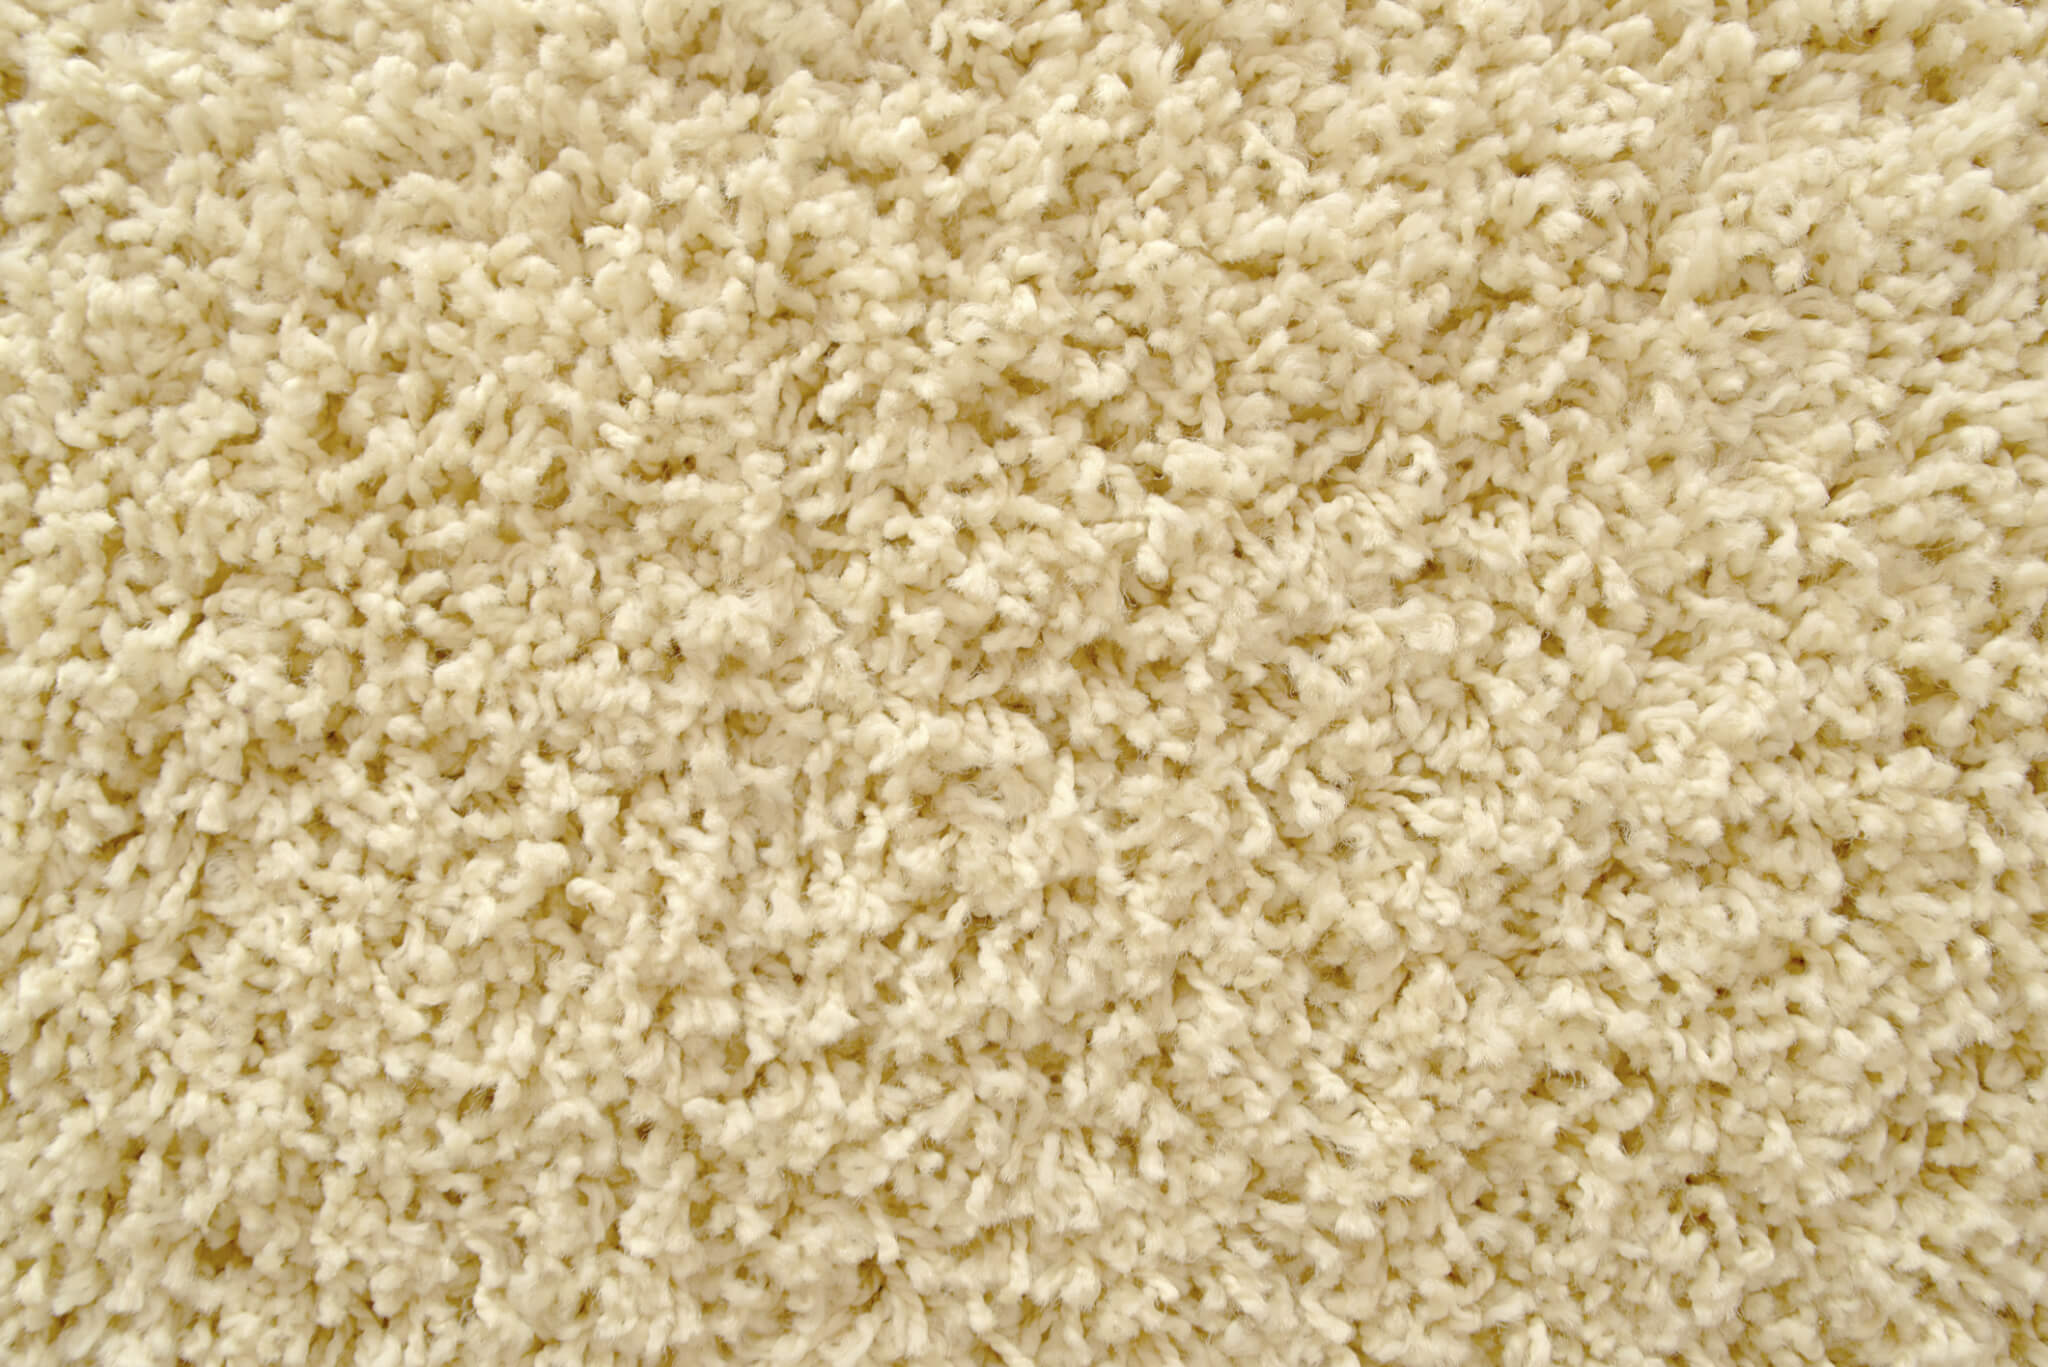 Beige carpet texure as background - Carpet Gallery